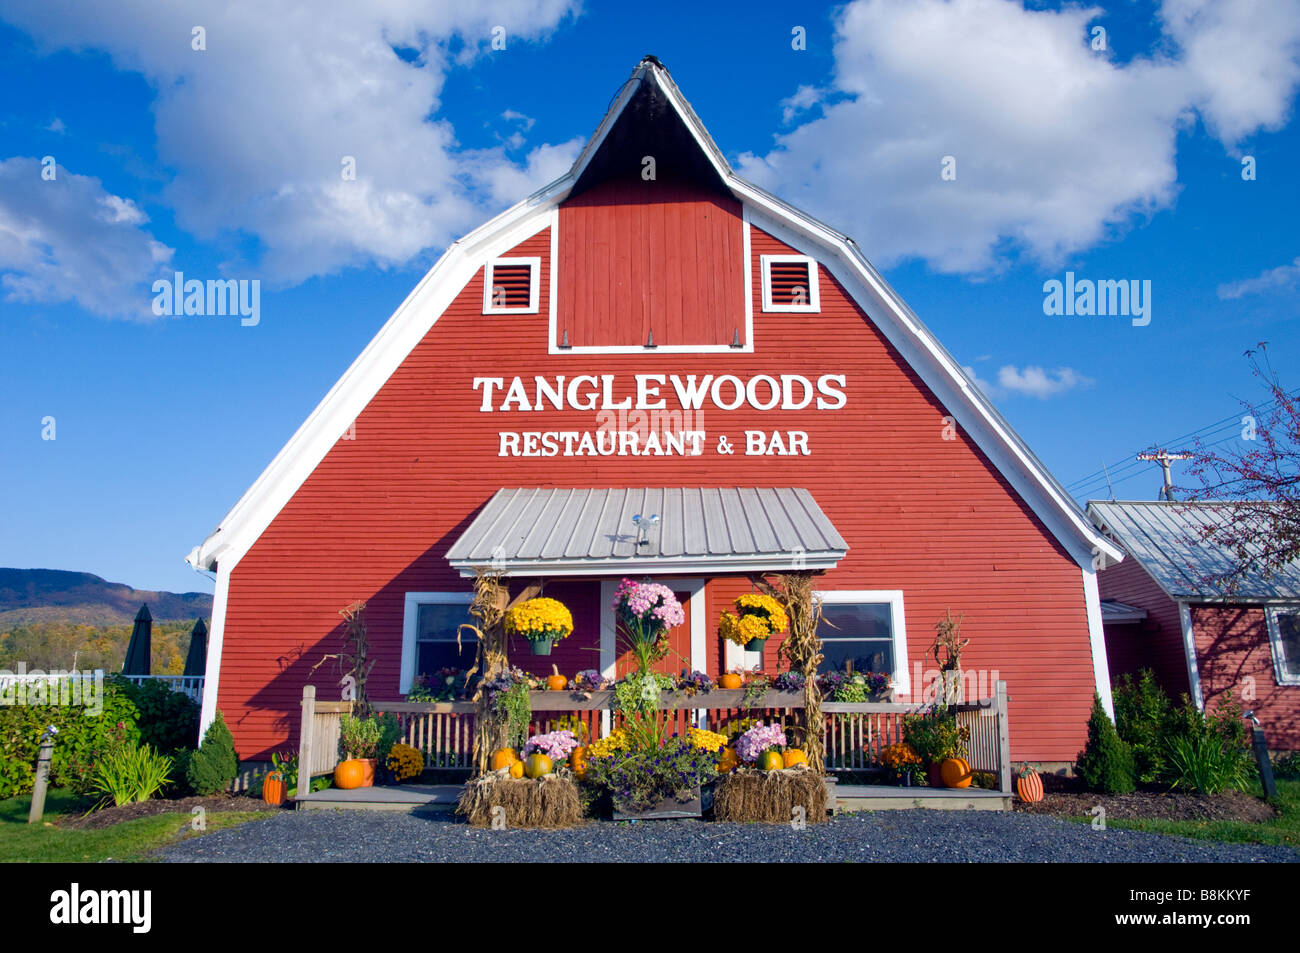 Tanglewoods restaurant and bar in a red barn in Waterbury, Vermont